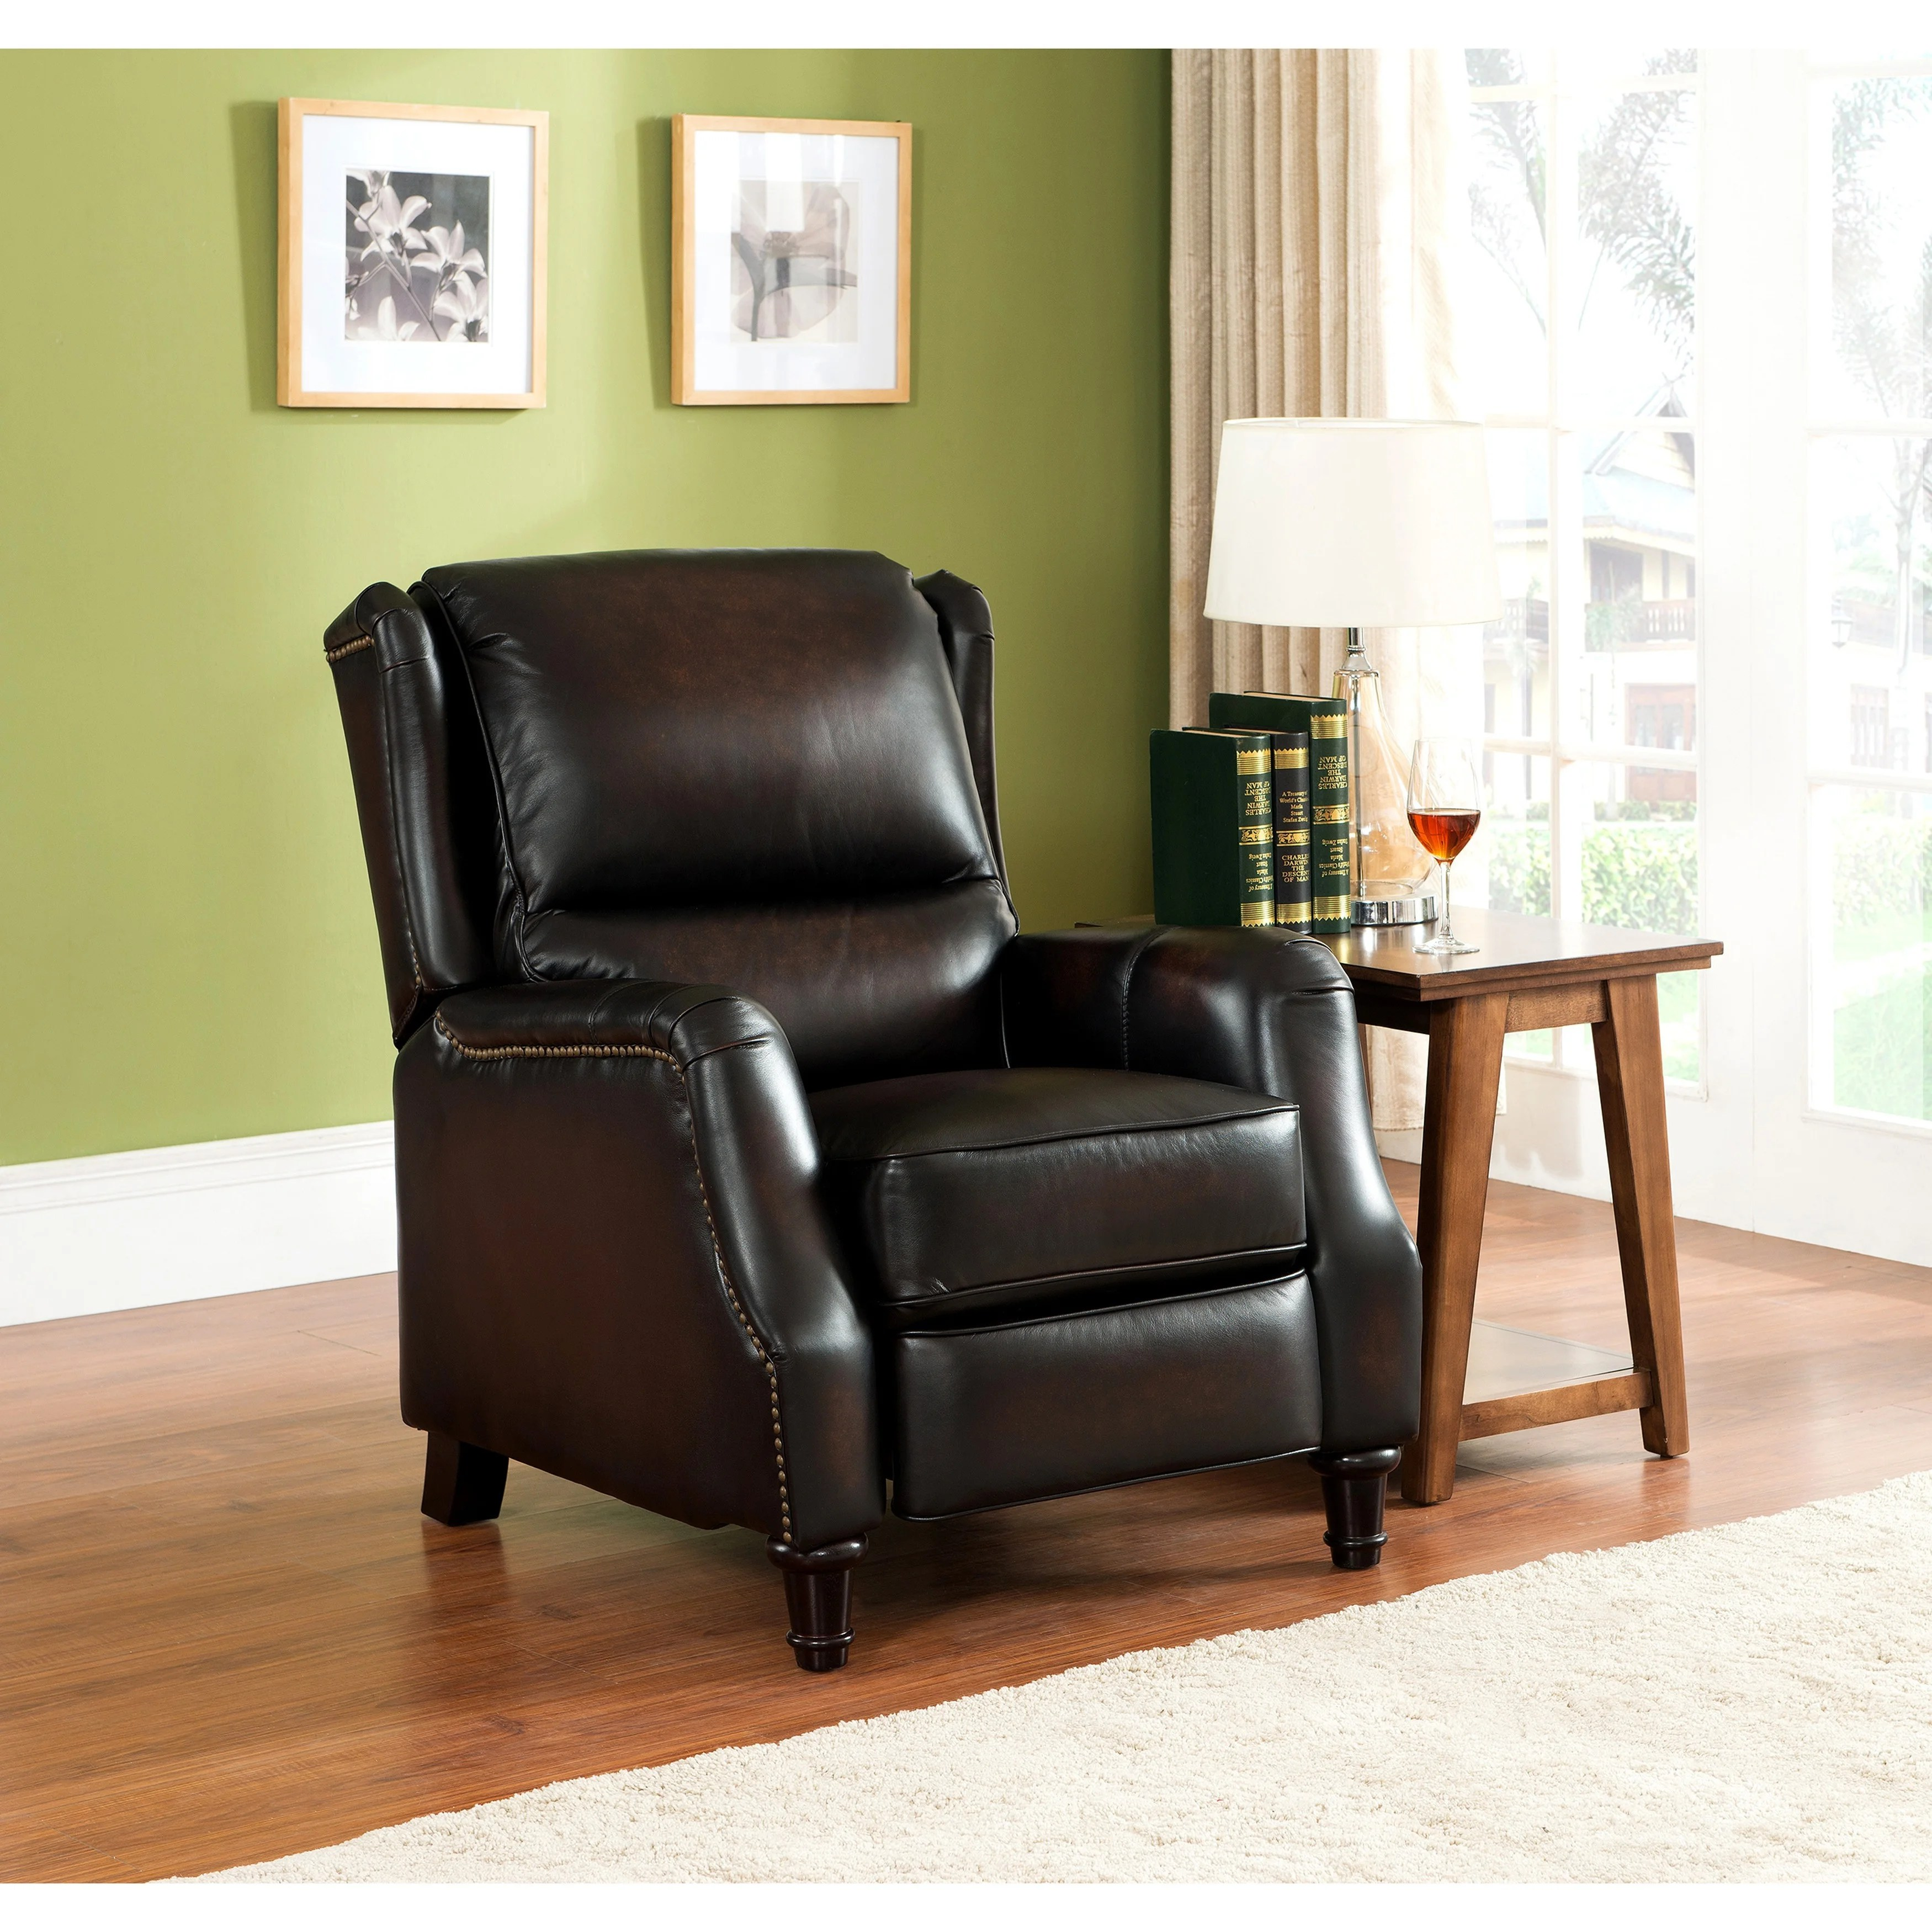 Wingback Recliner Chair Liberty Wingback Brown Red Hand Rubbed Premium Top Grain Leather Recliner Chair